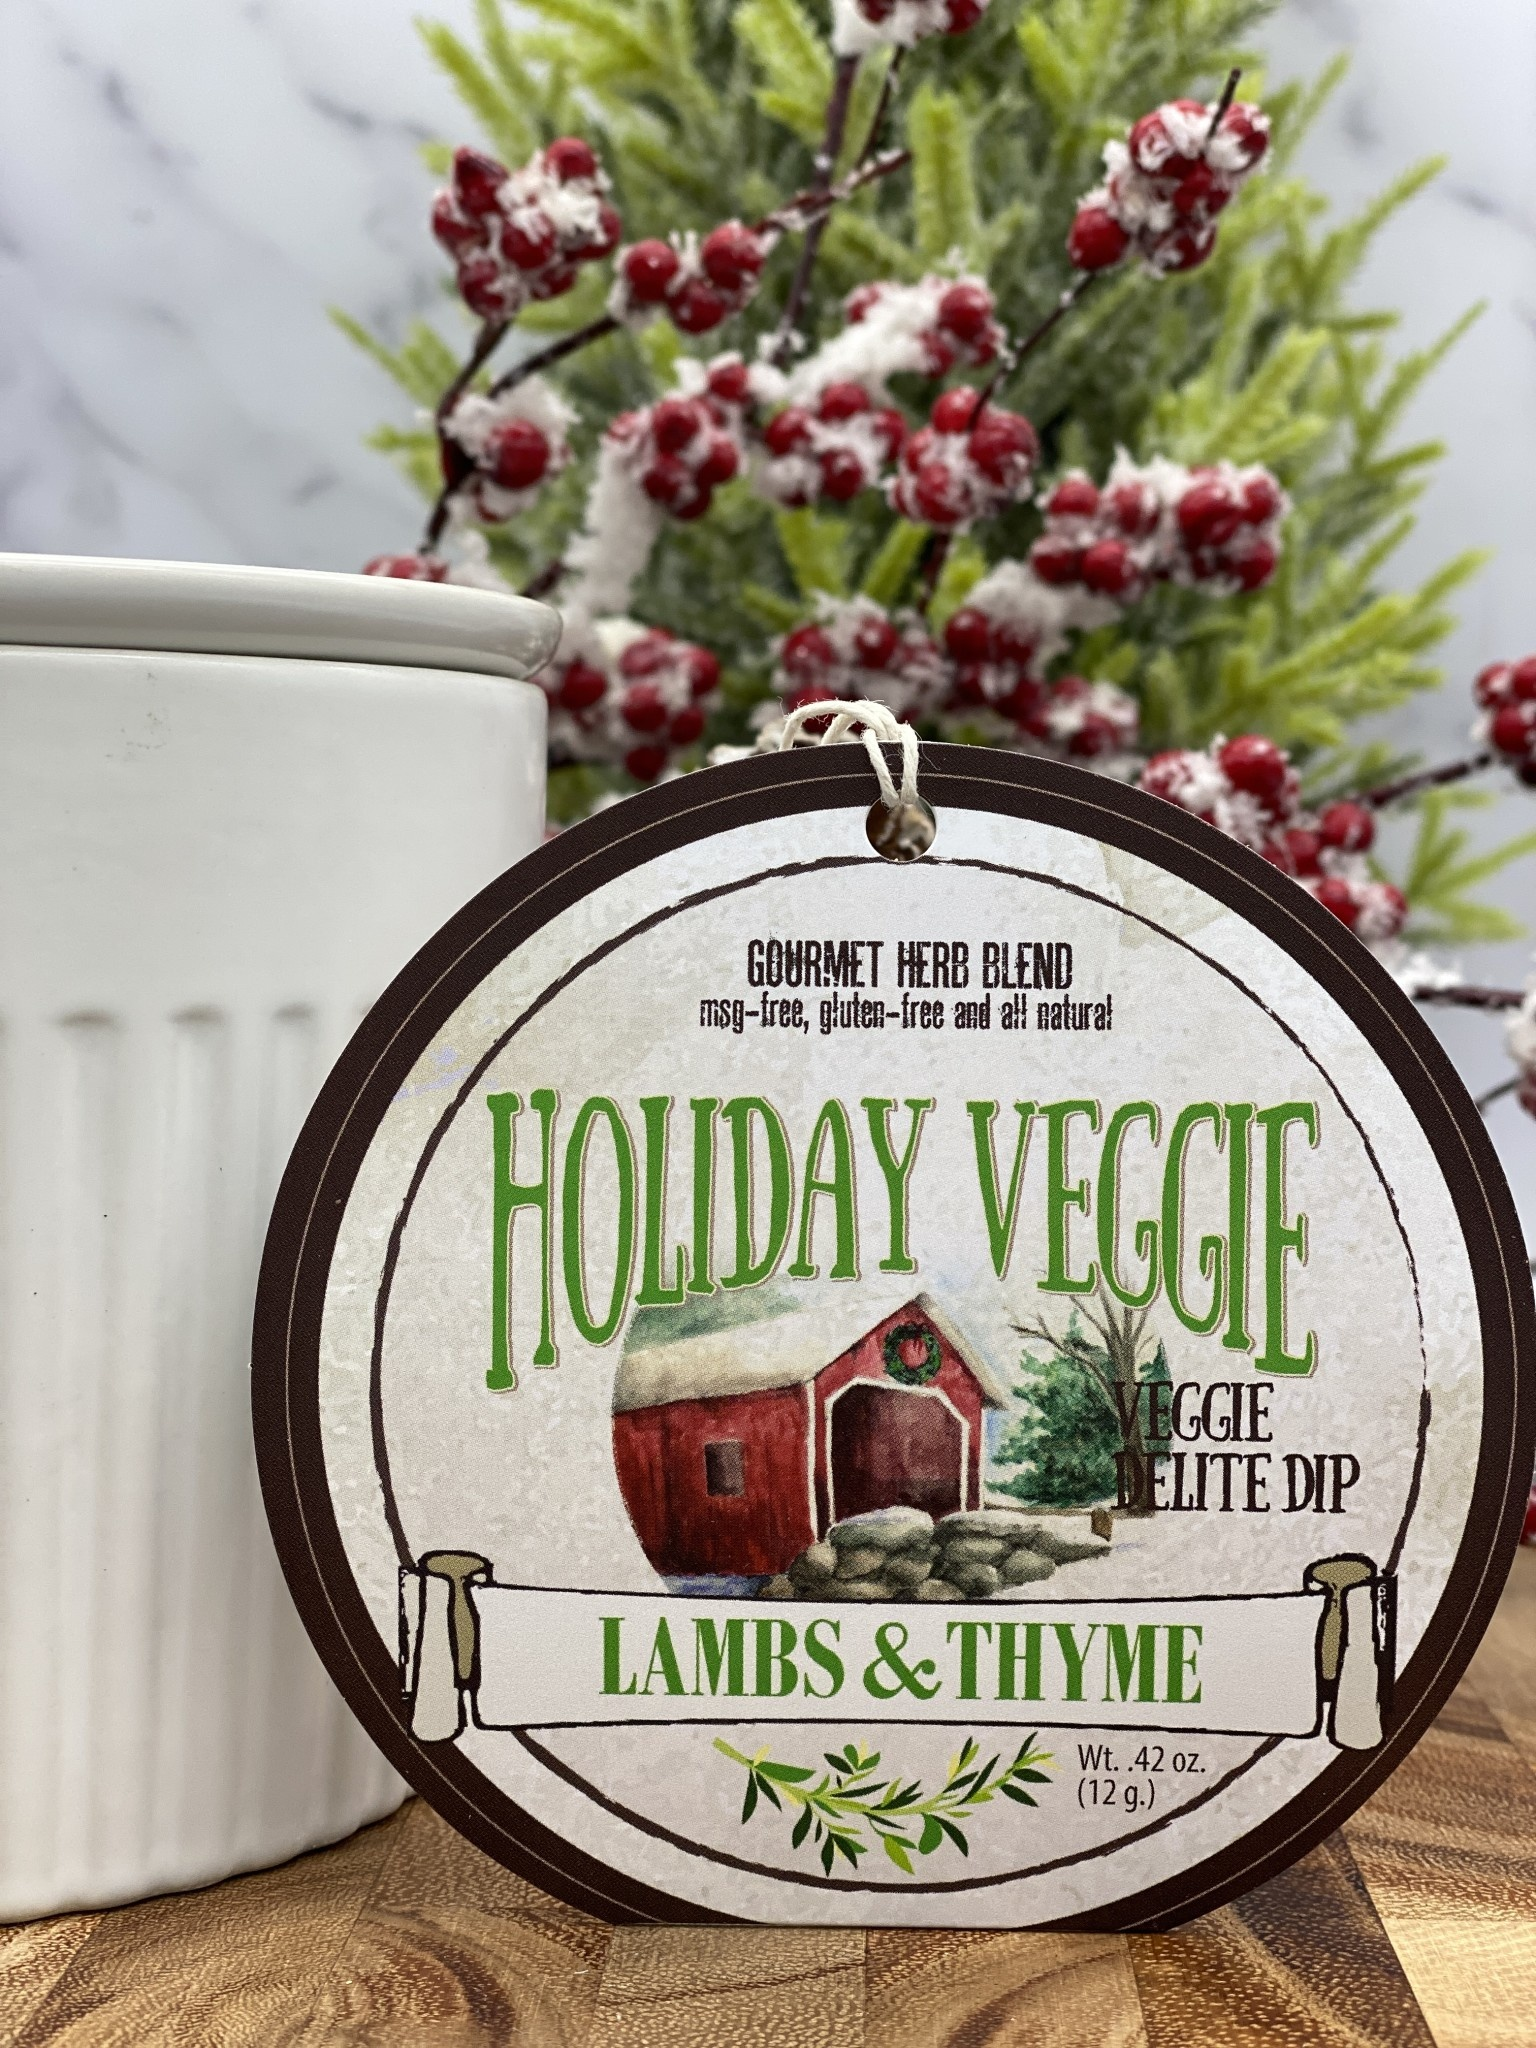 Lambs & Thyme Holiday Dips Holiday Veggie